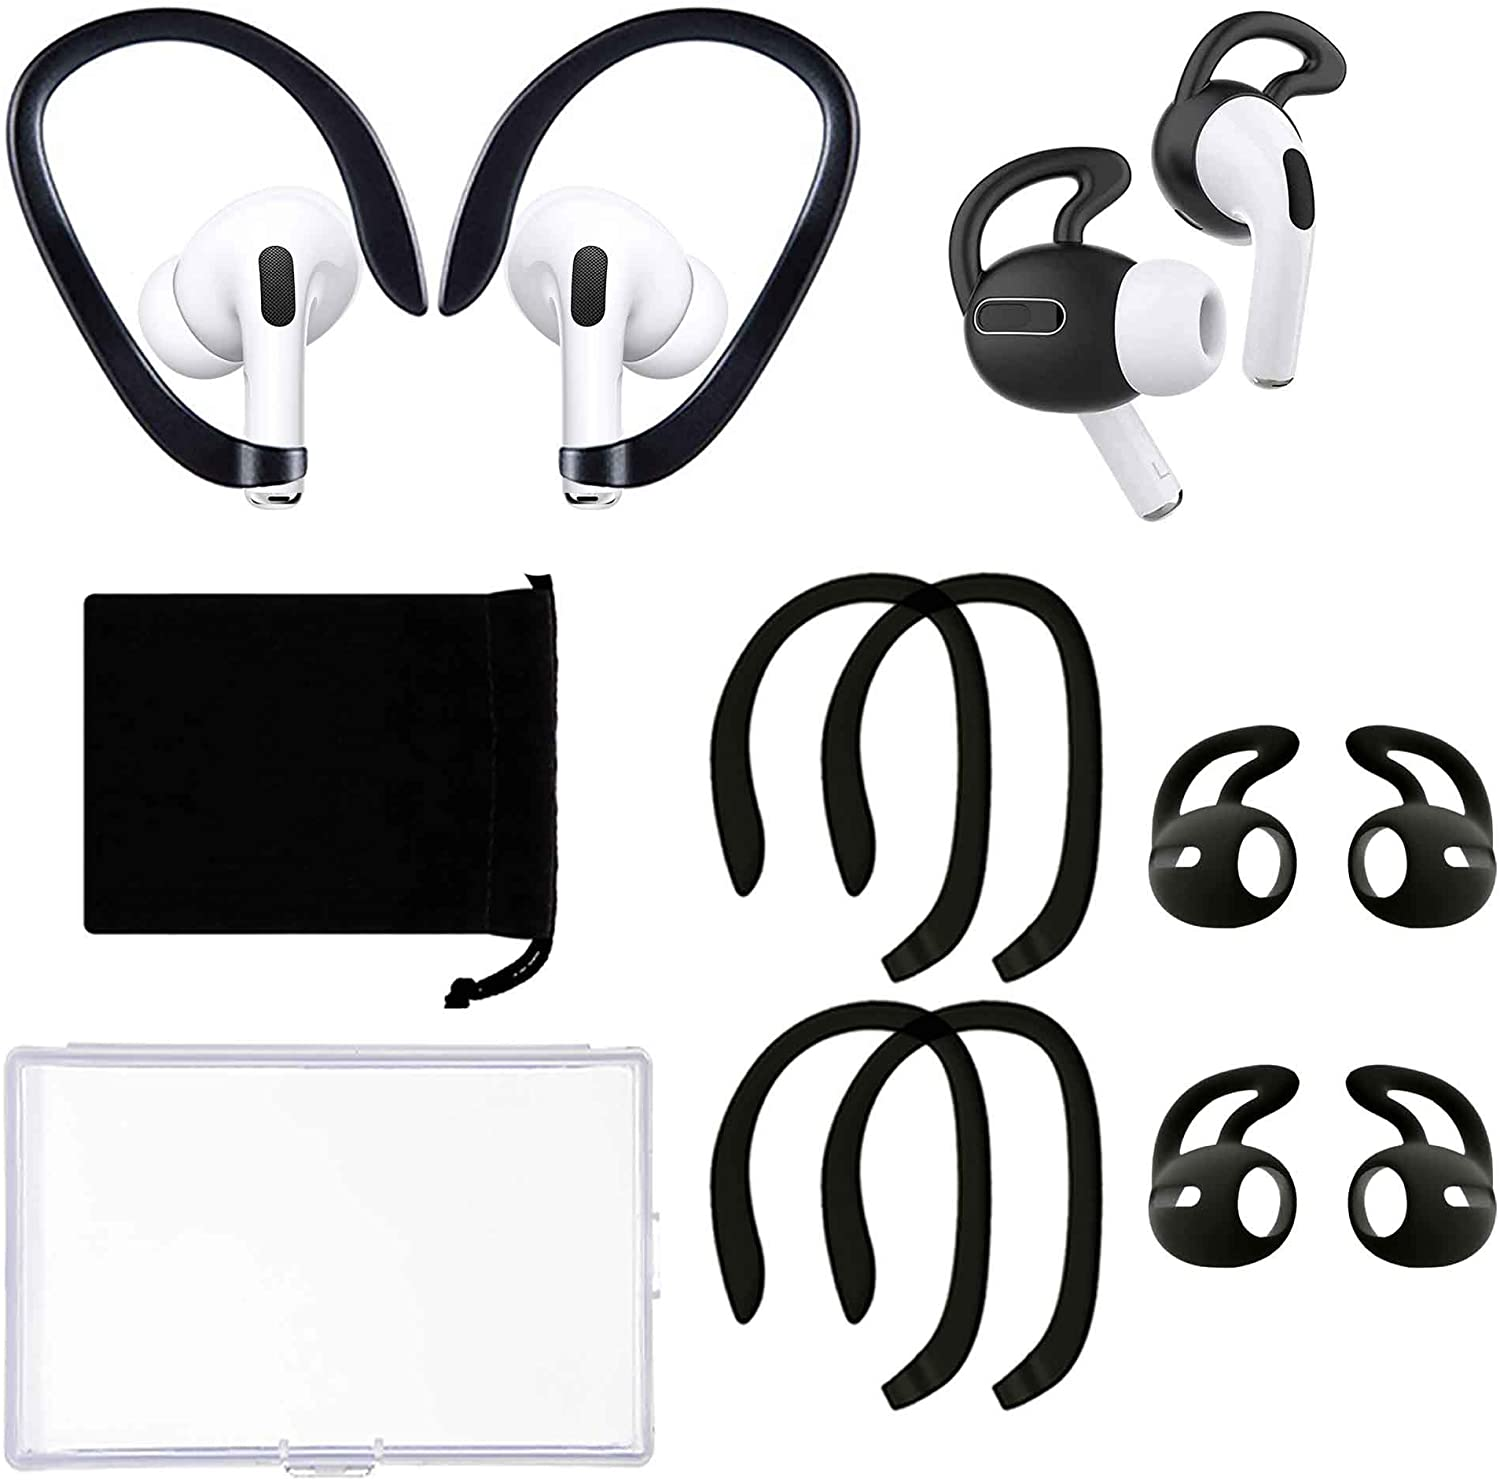 2 Pairs Ear Hooks 2 Pairs Ear Covers Compatible with Apple AirPods Pro, Anti-Slip Anti-Drop Ear Covers AirPods Accessories for Running, Cycling and Other Indoor-Outdoor Activities (Black)